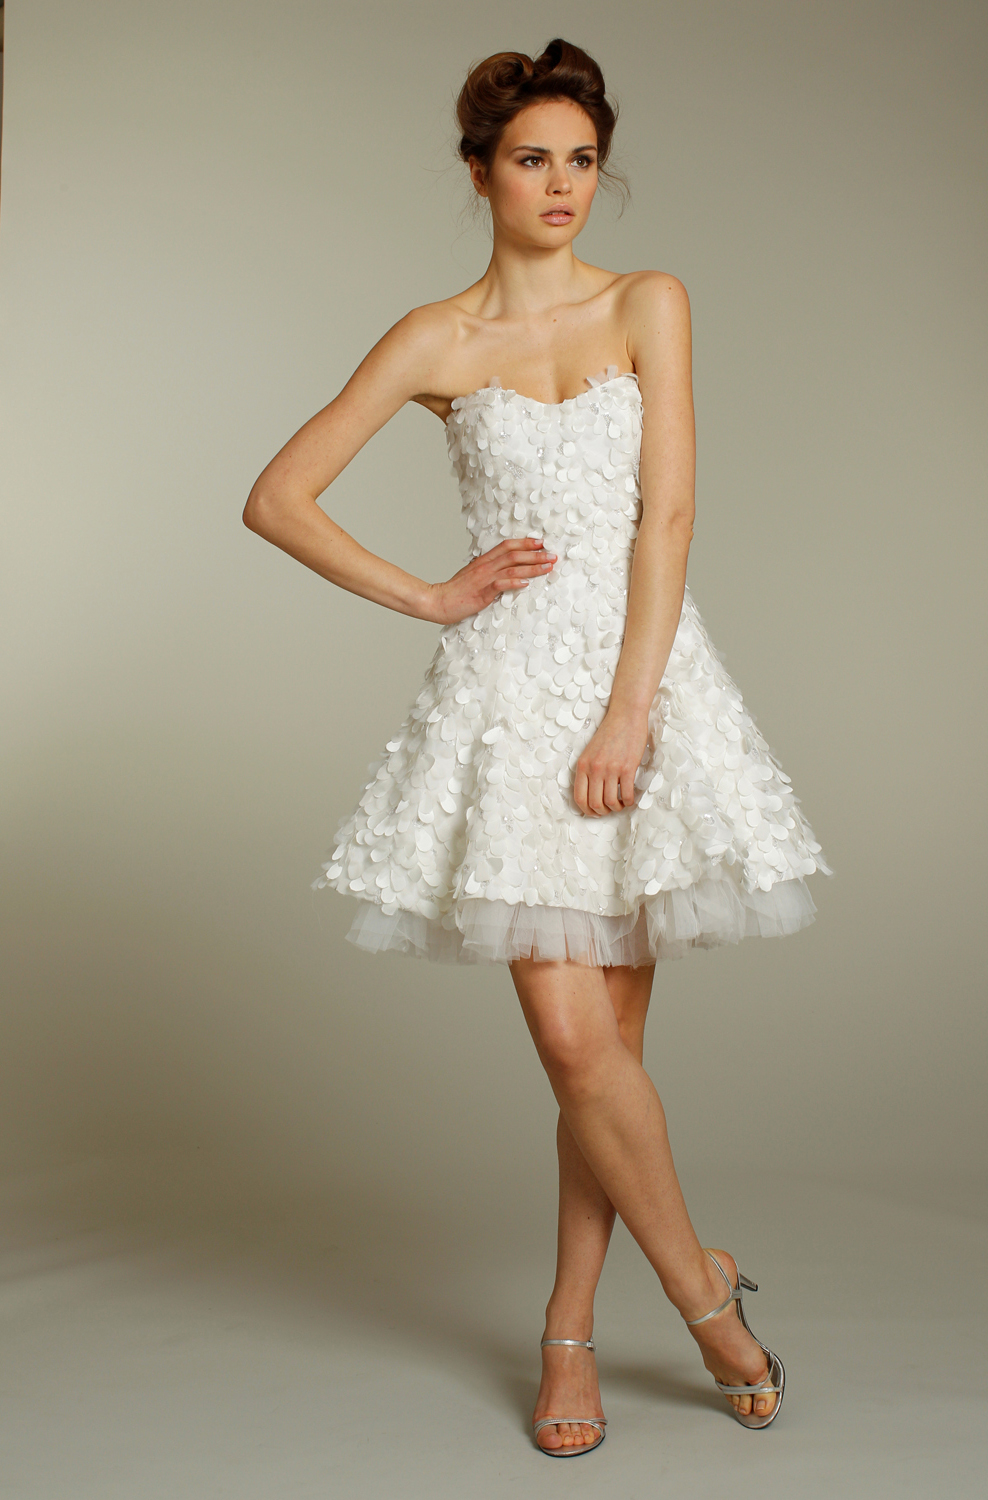 Short Dresses For Wedding